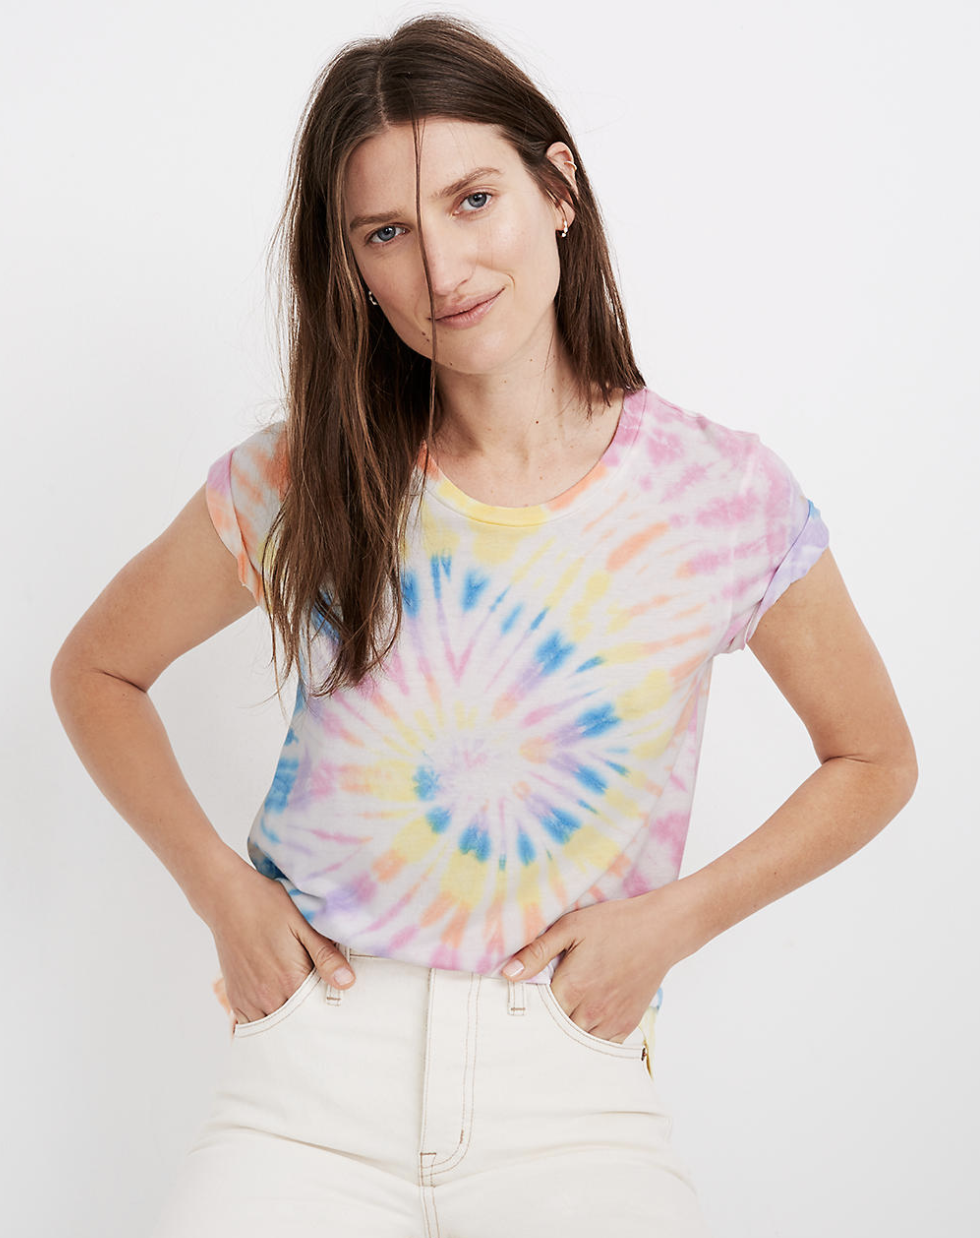 a model wearing the tie-dye tee which has a swirl of purple, pink, orange, yellow, and blue throughout it